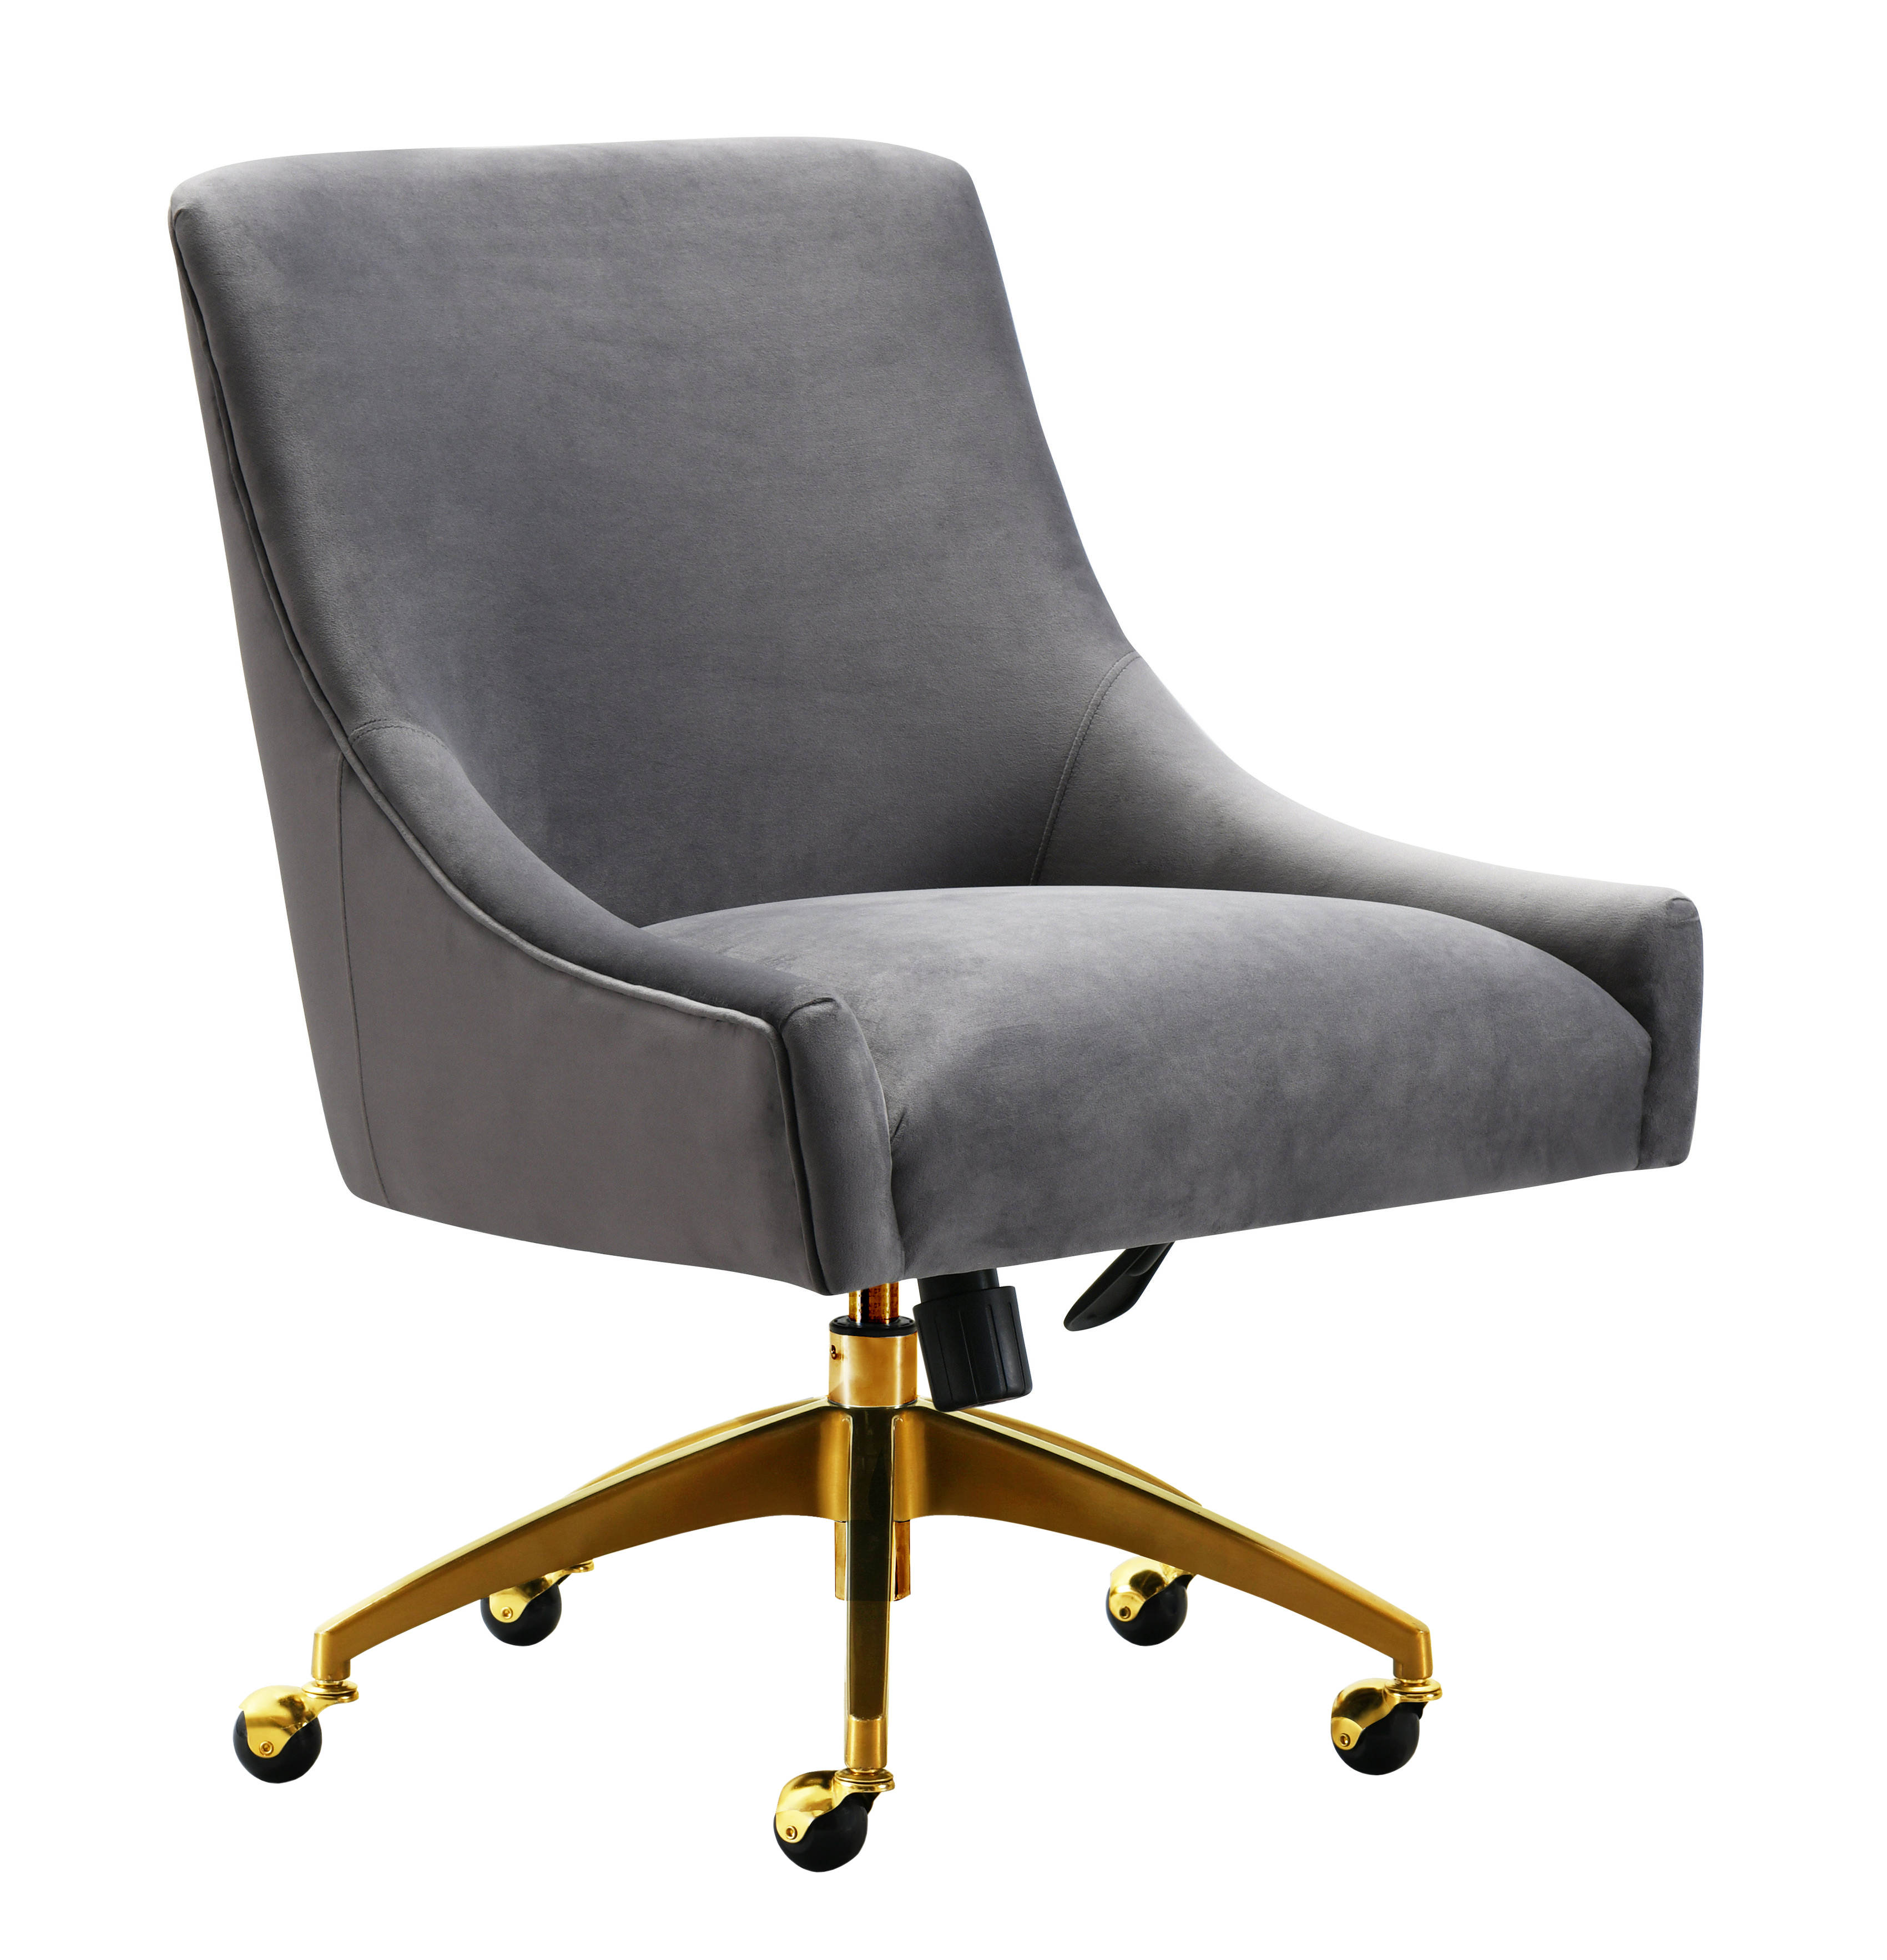 Tov Furniture Beatrix Grey Gold Swivel Office Chair Click To Enlarge